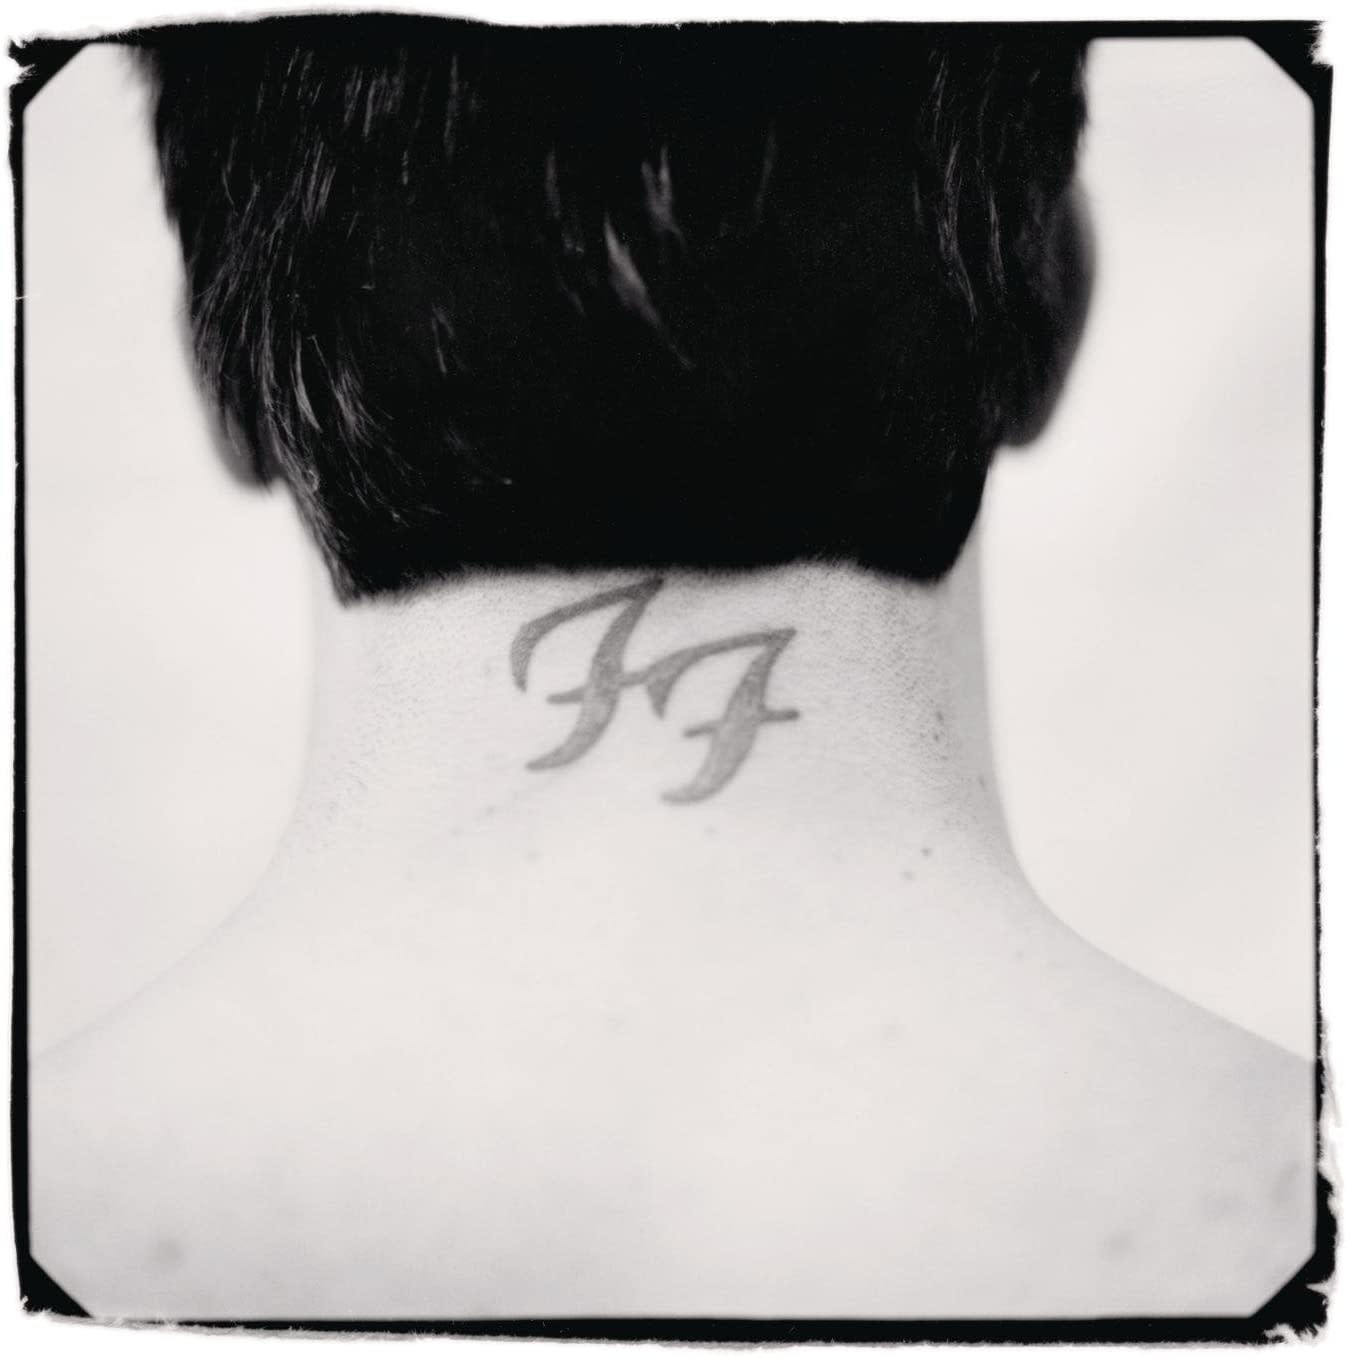 Foo Fighters – There Is Nothing Left To Lose